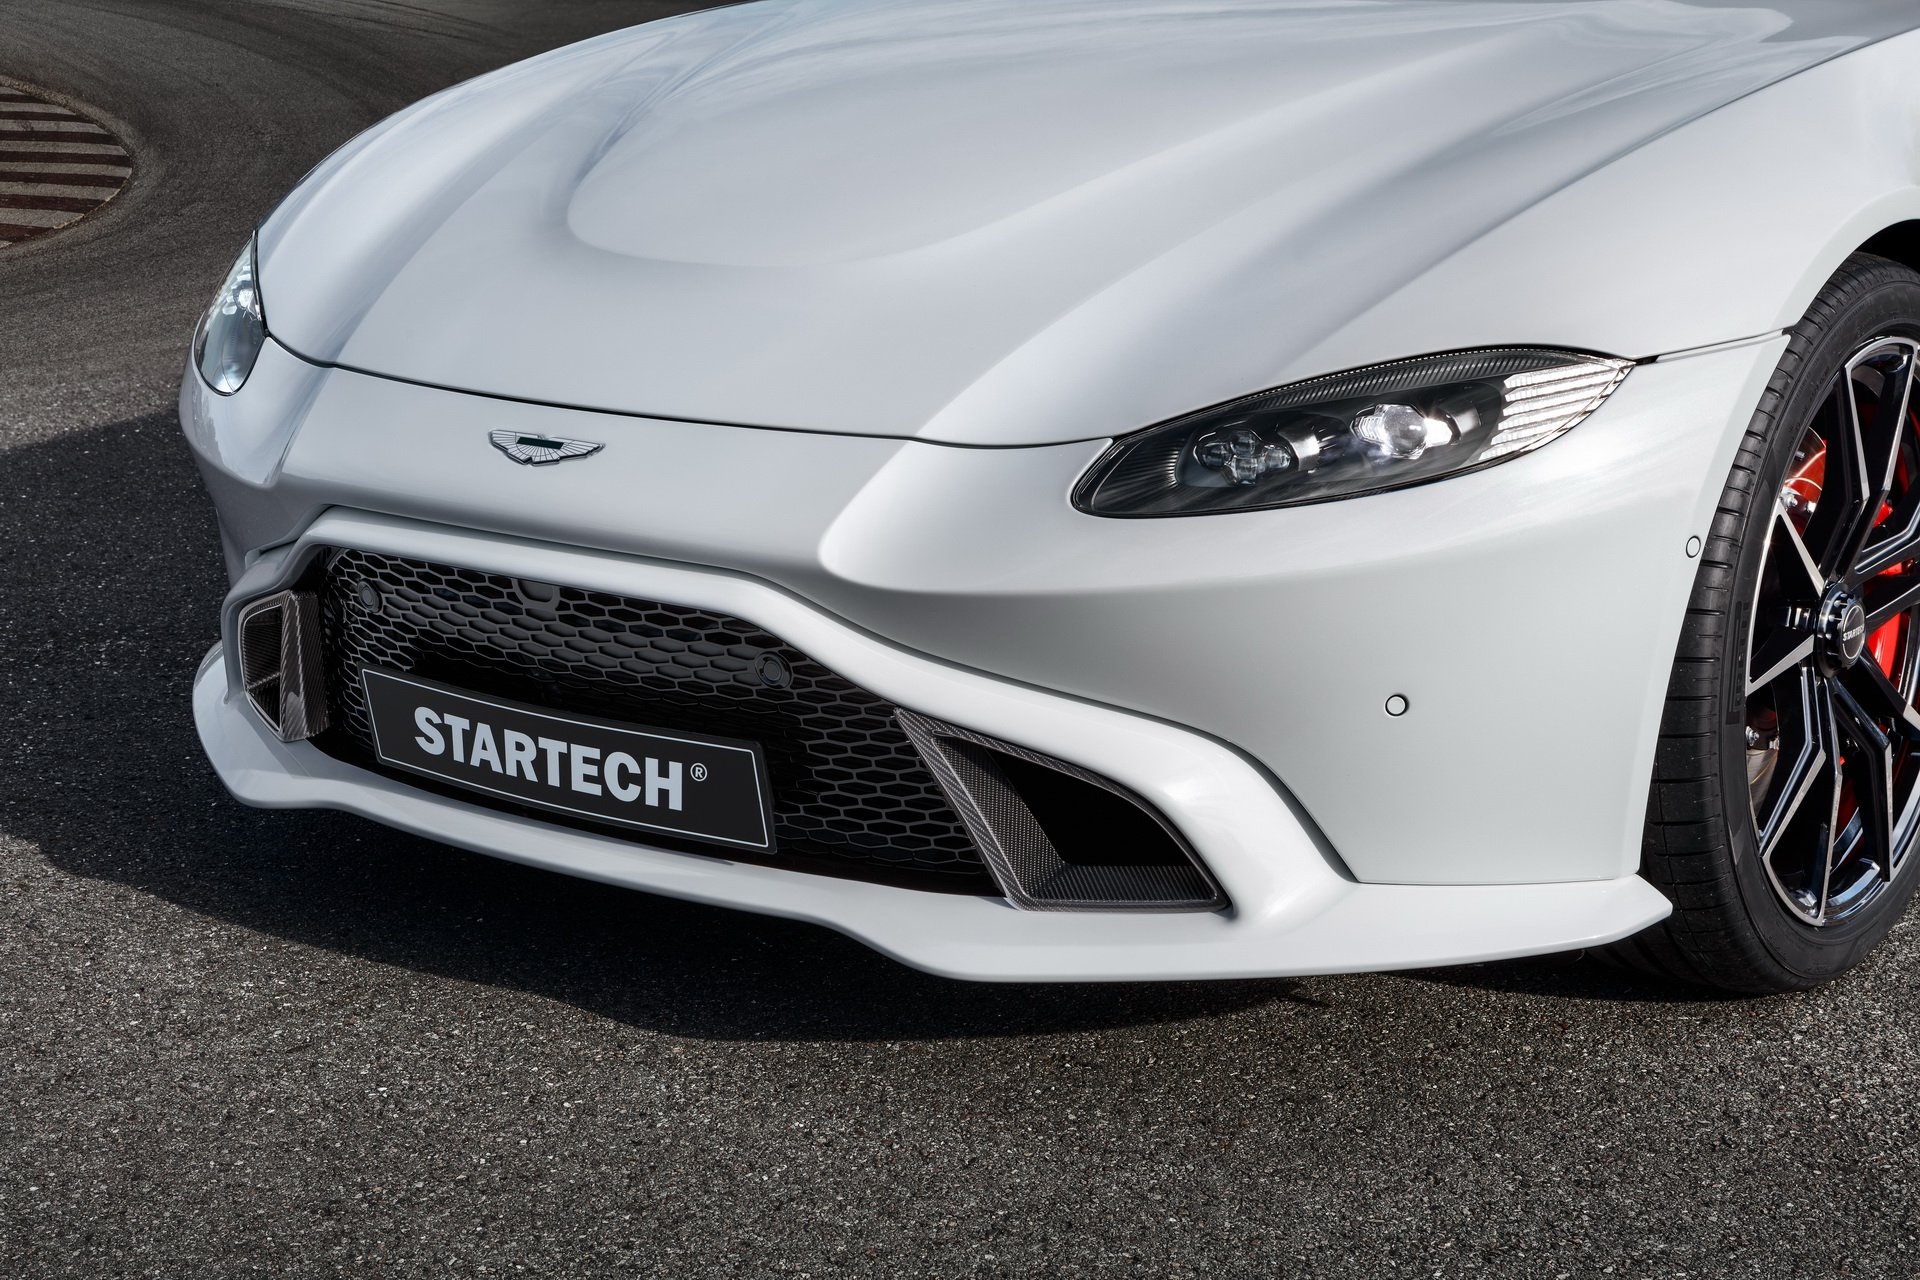 2019 STARTECH Aston Martin Vantage Headlight Wallpapers (6)